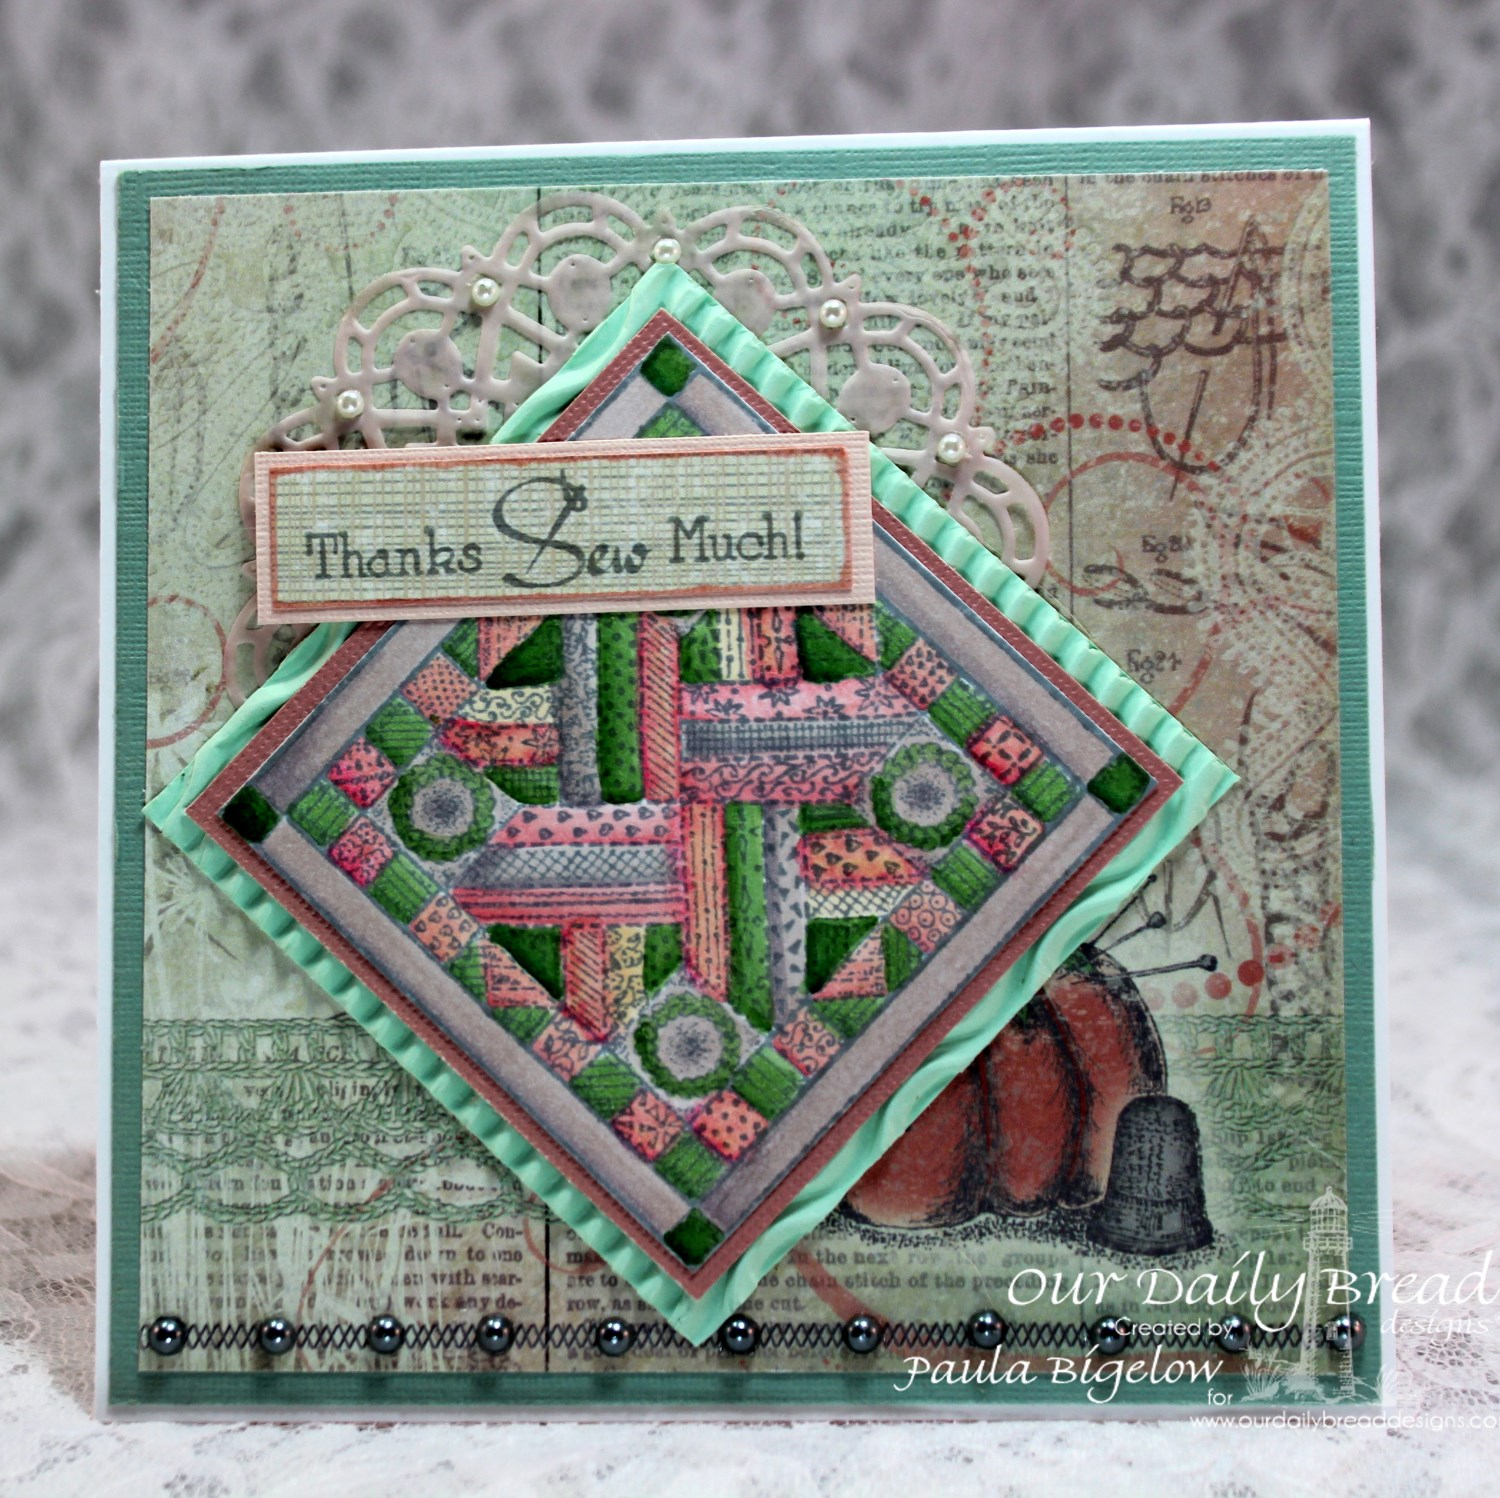 Stamps - Our Daily Bread Designs Quilts, ODBD Custom Doily Die, ODBD Soulful Stitches Paper Collection